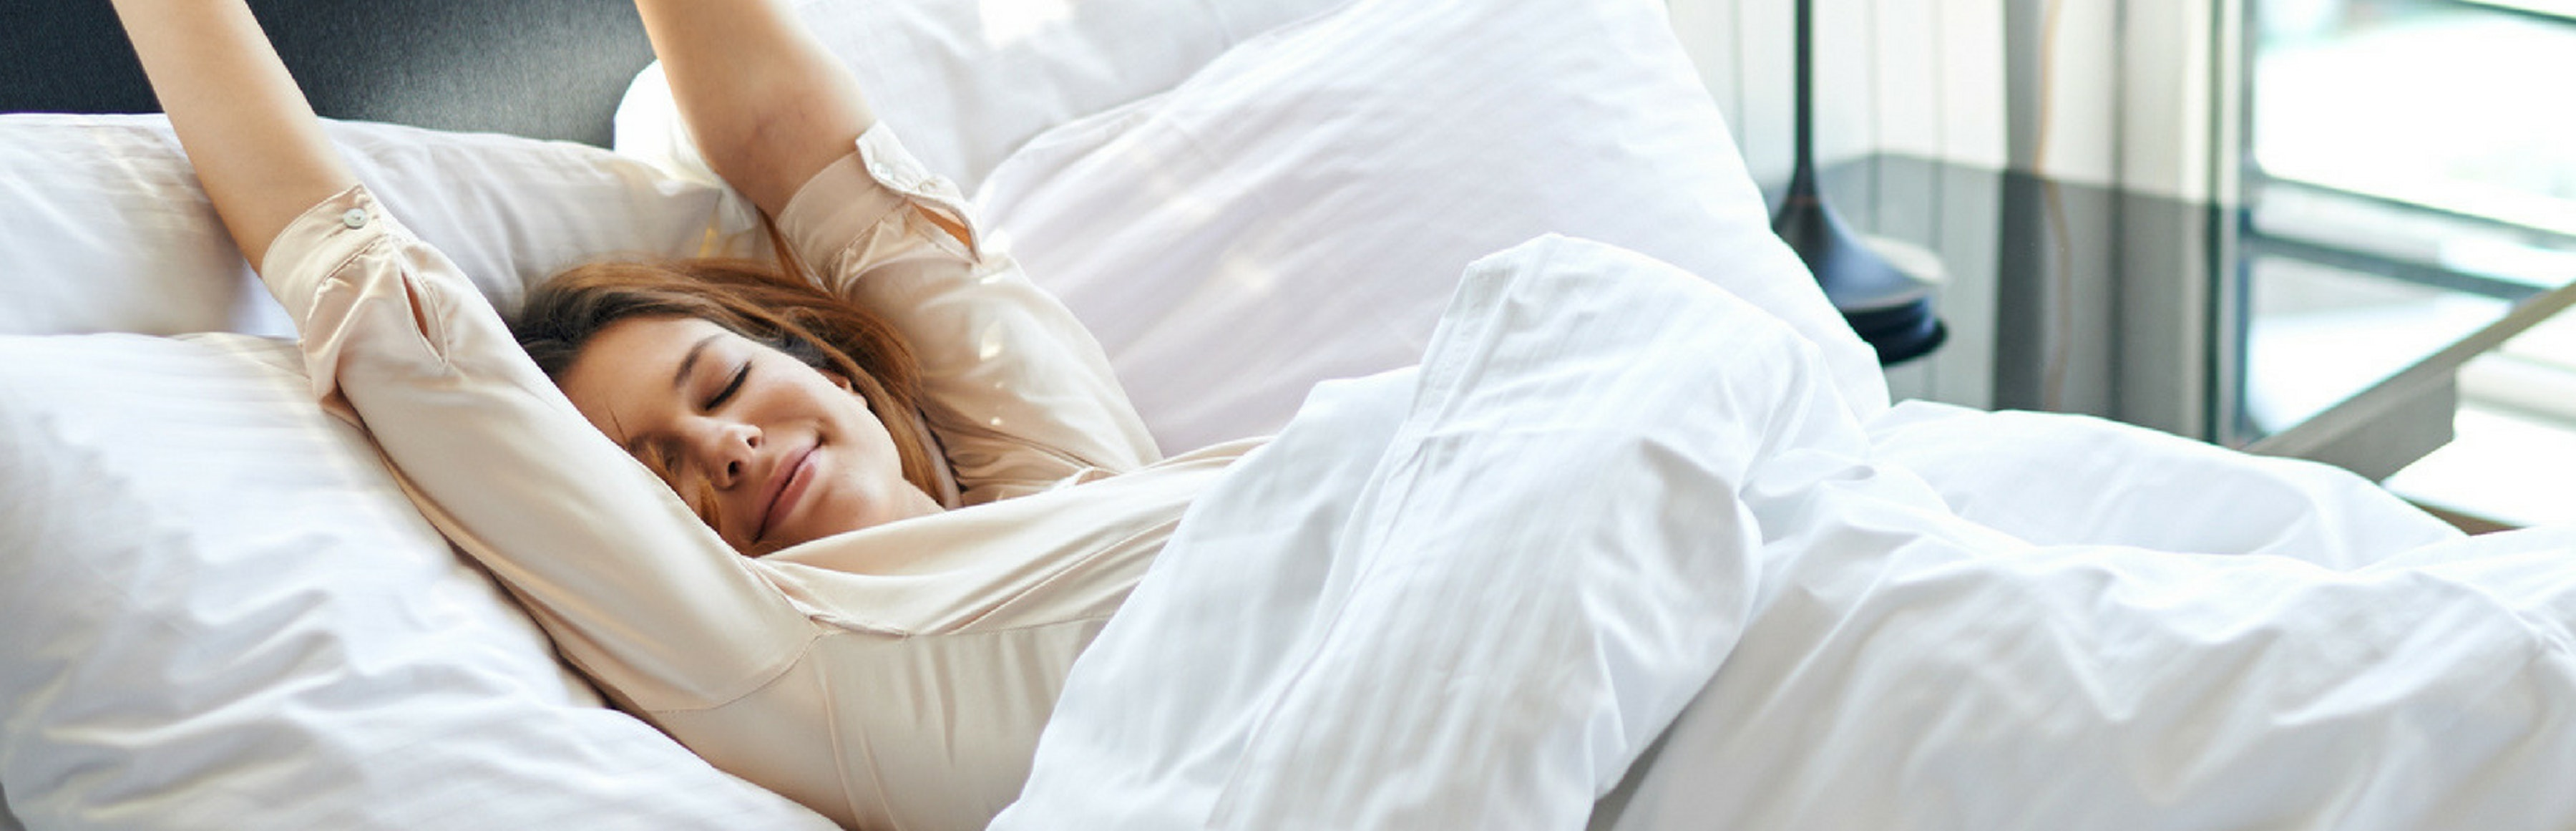 6 Tips to Sleep Better - How To Sleep Well Feeling on Top of the World with a Latex Mattress